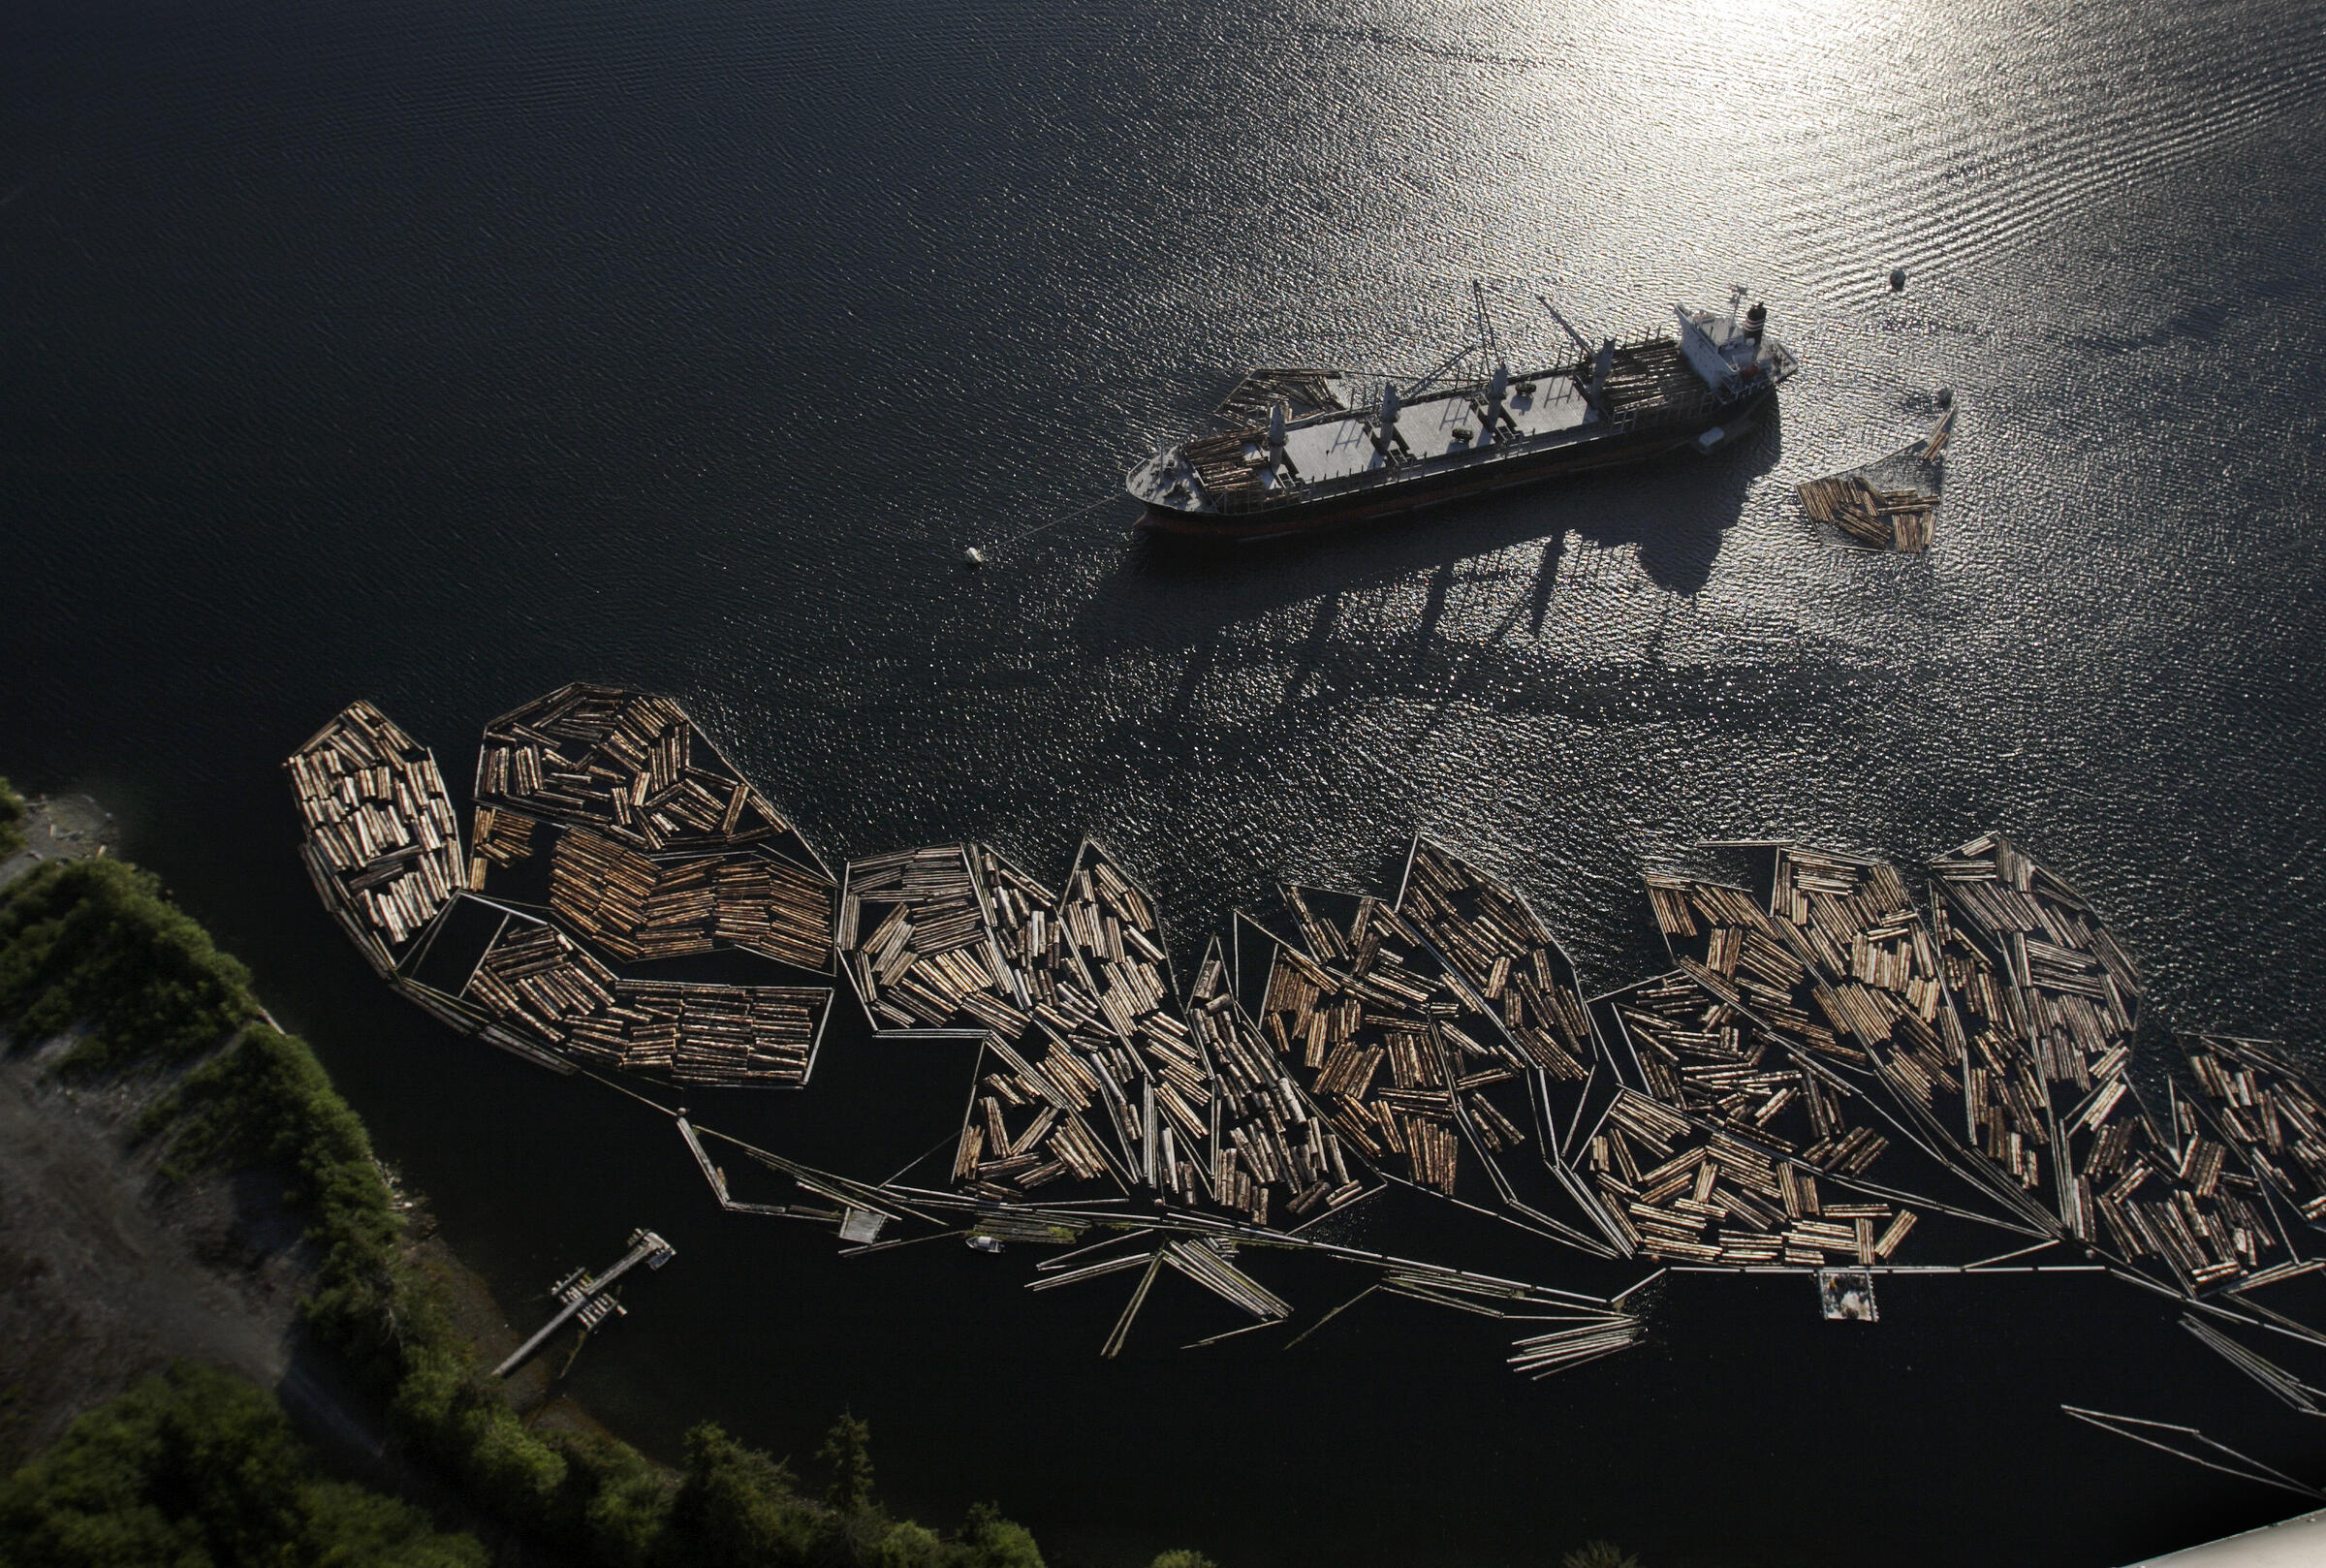 Timber is loaded for export onto a ship in Thorne Bay, Prince Wales Island, Alaska. Melissa Farlow/National Geographic Creative